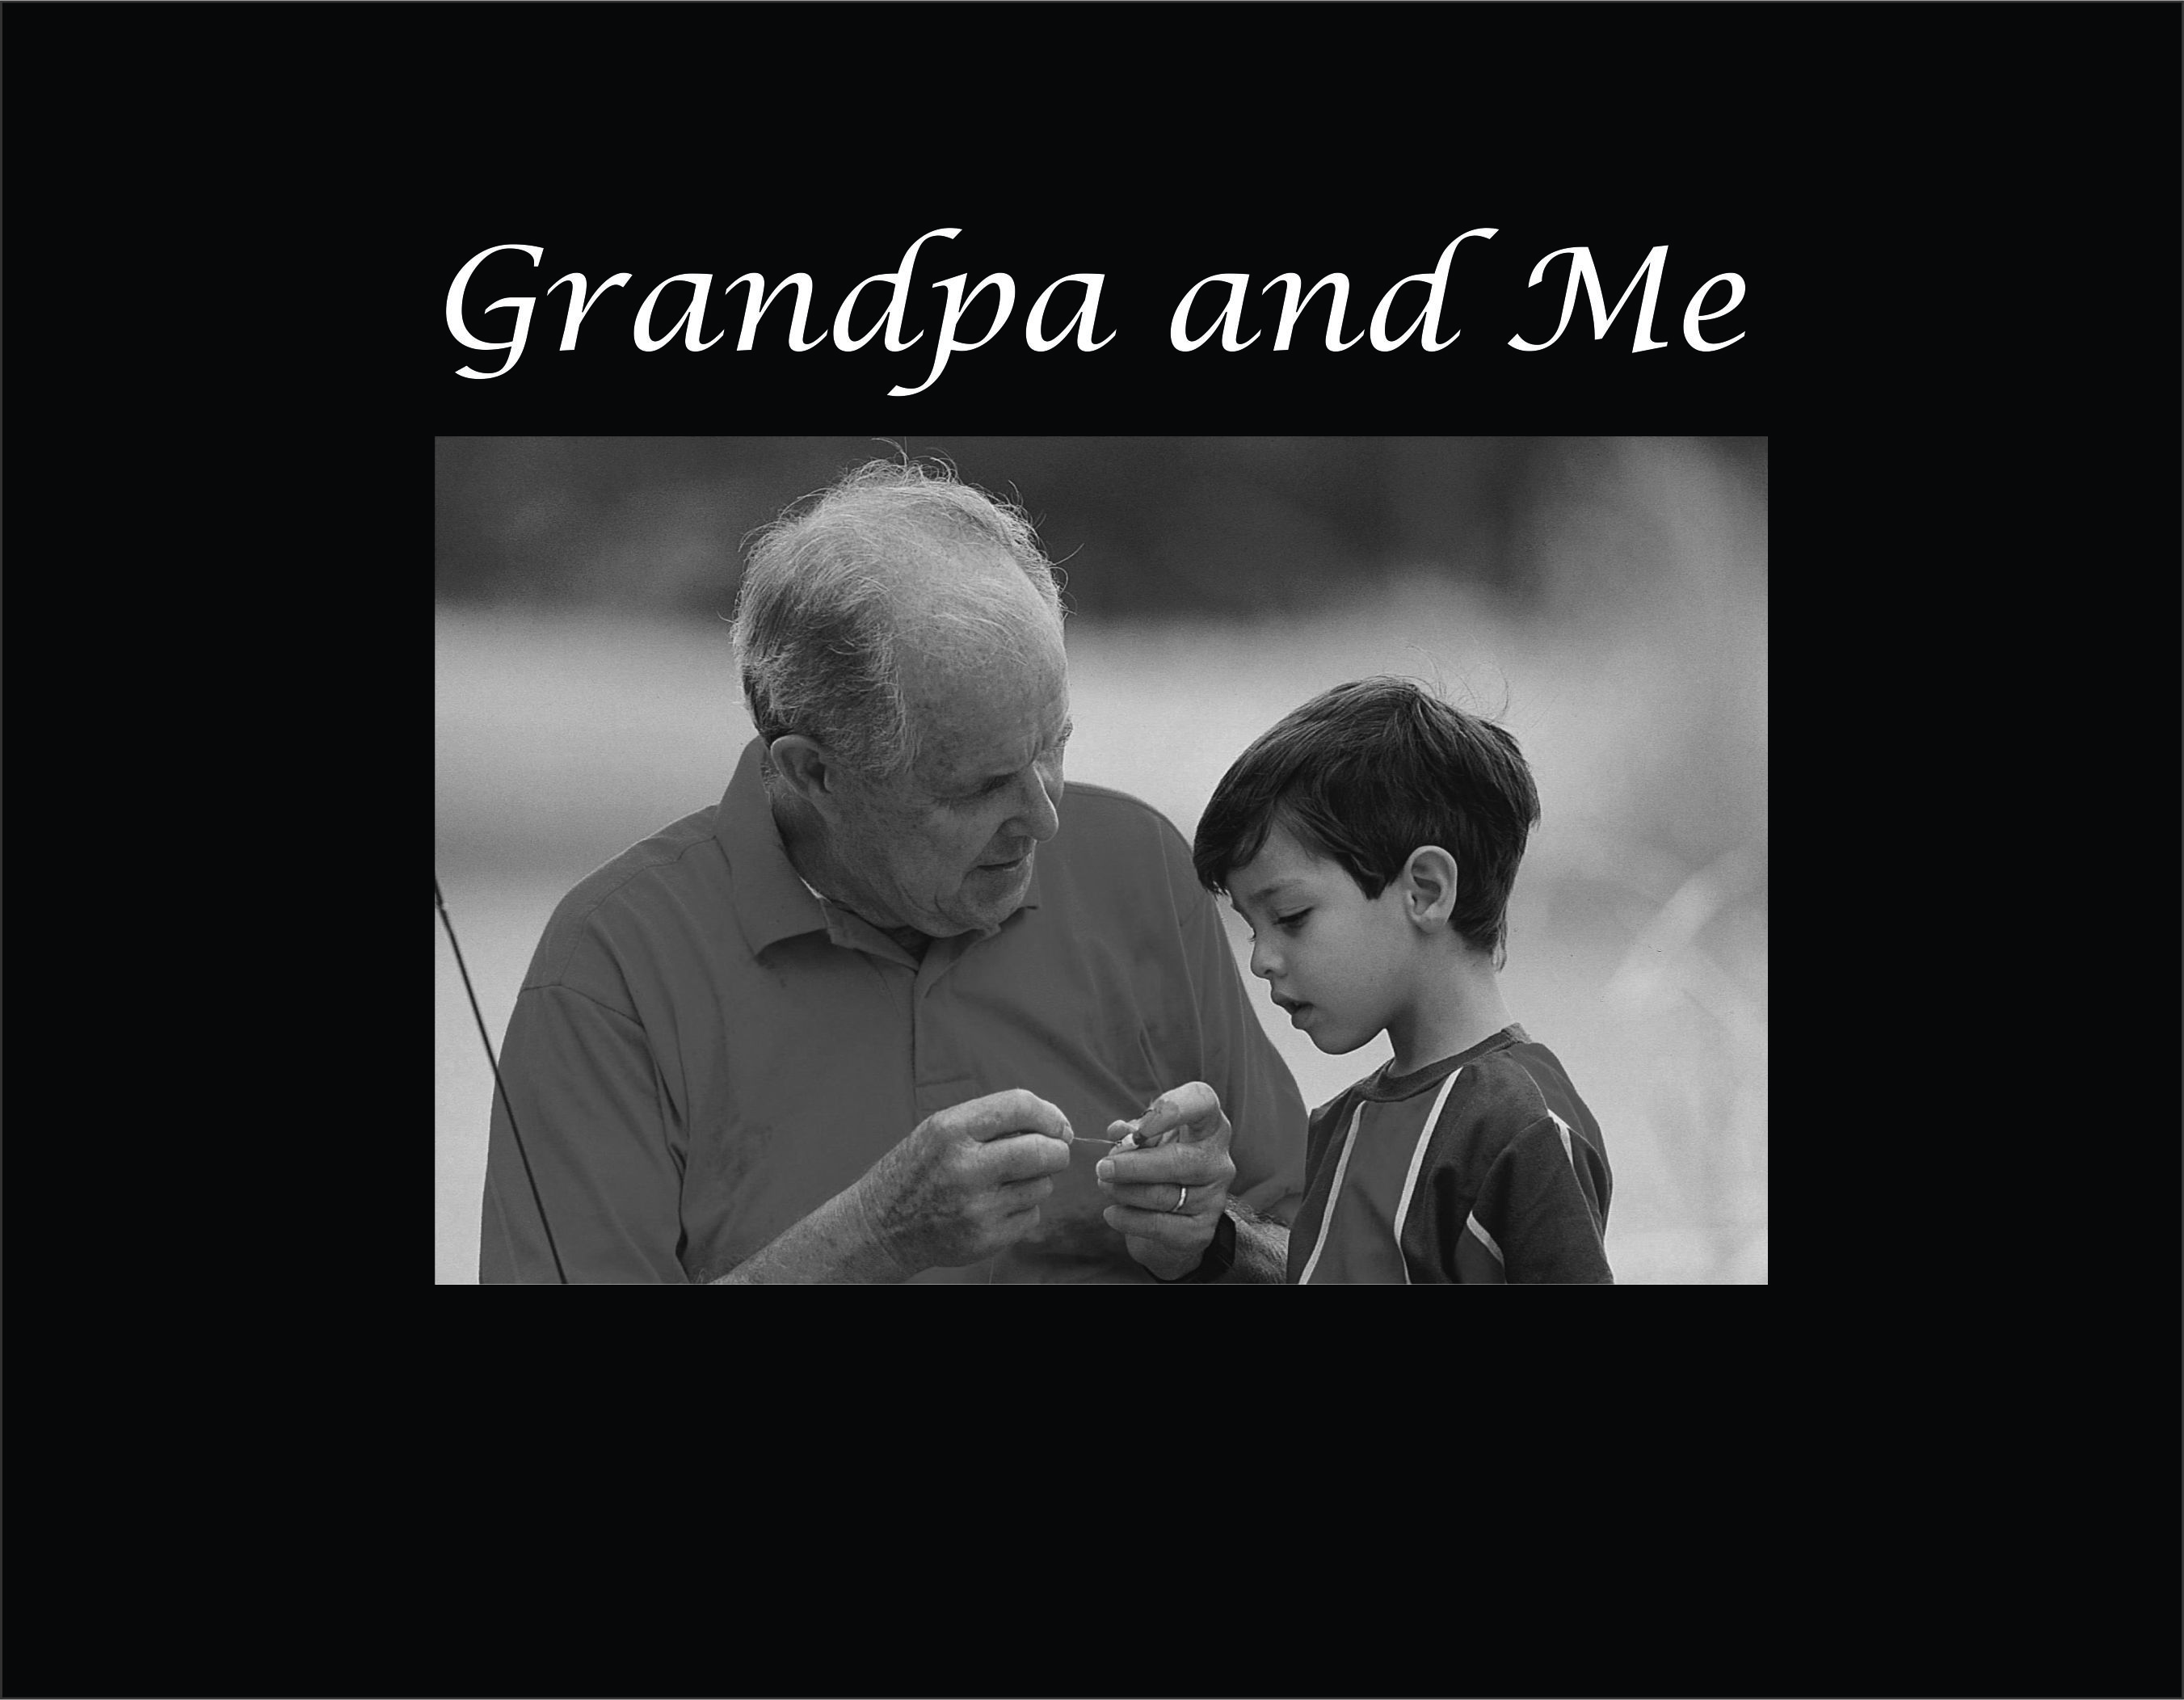 Grandpa And Me Picture Frames Pictures to Pin on Pinterest - PinsDaddy